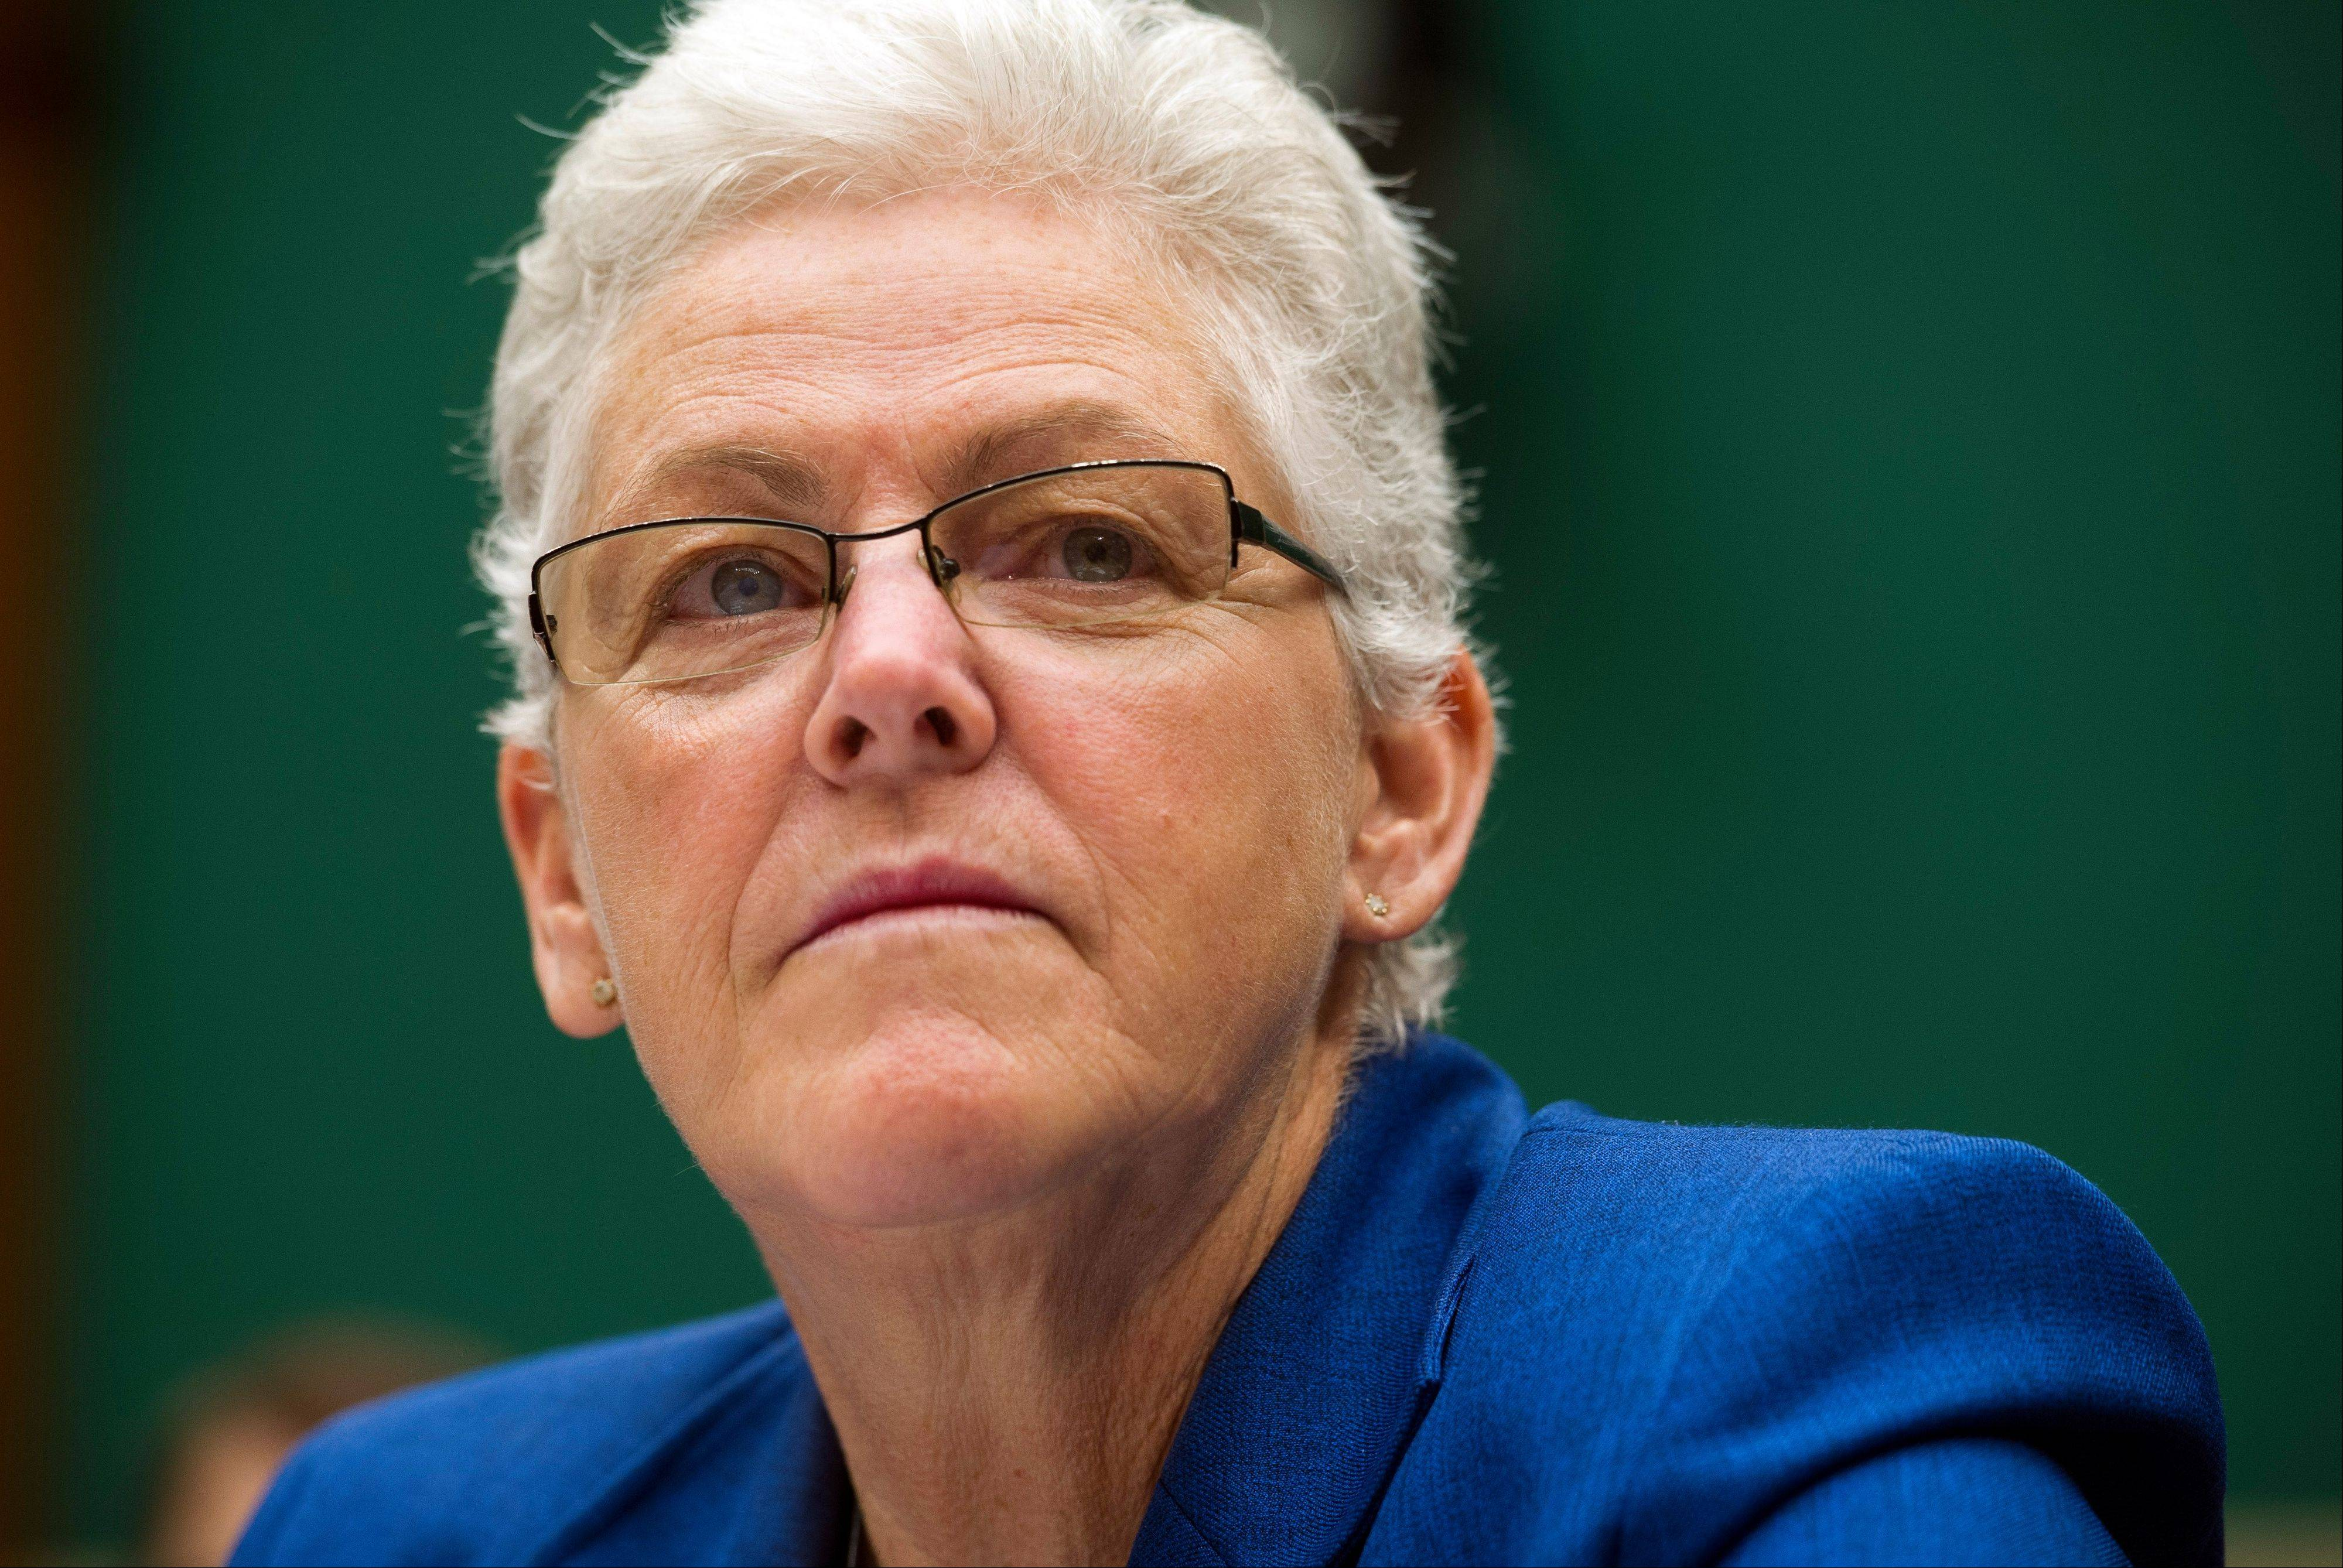 �We know this is not just about melting glaciers,� said EPA administrator Gina McCarthy. �Climate change � caused by carbon pollution � is one of the most significant public health threats of our time. That�s why EPA has been called to action.�